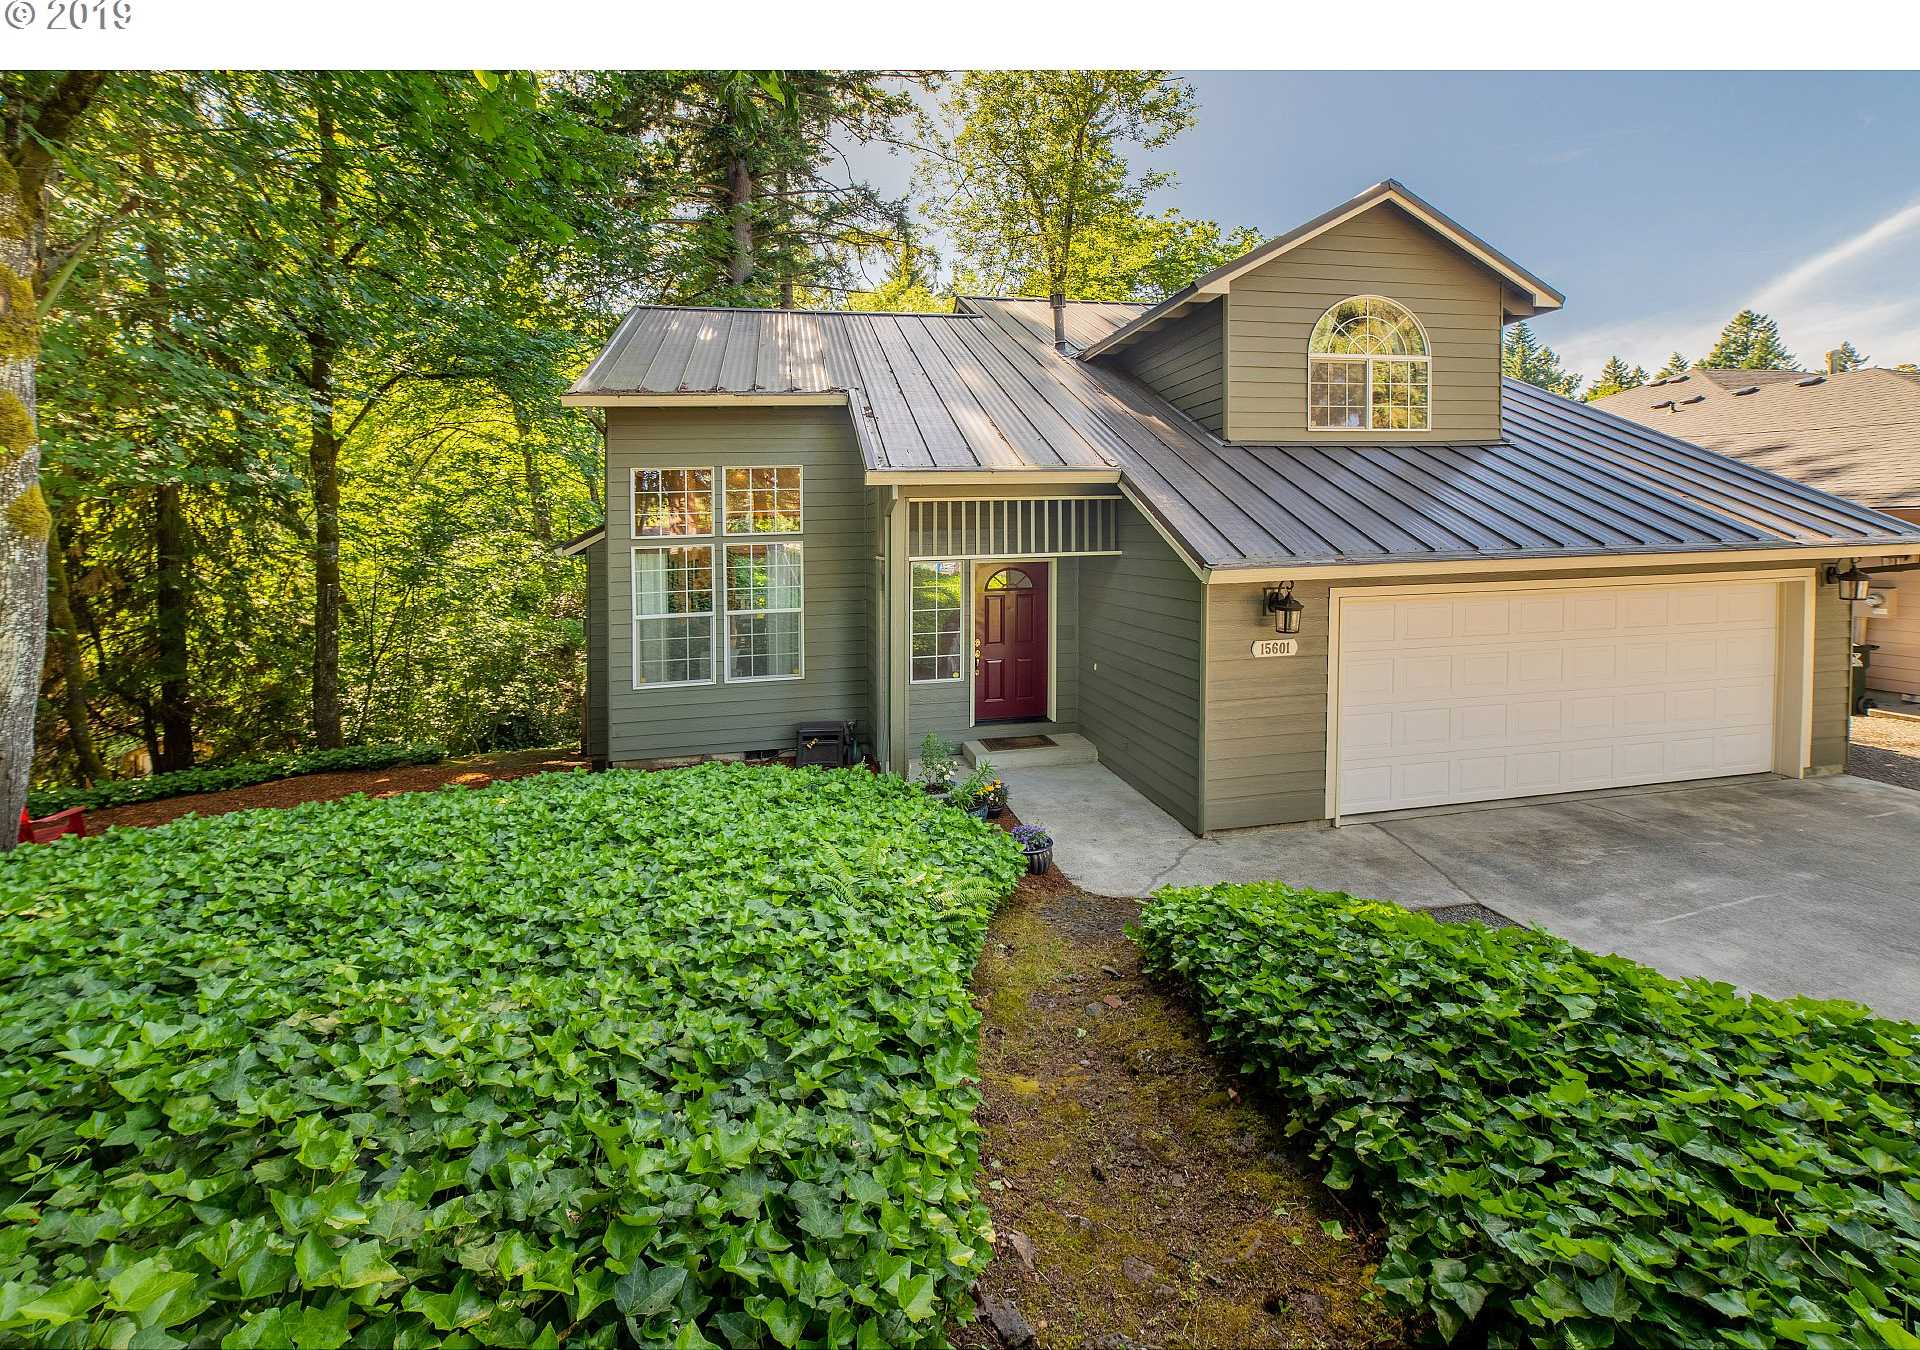 $379,900 - 3Br/2Ba -  for Sale in Milwaukie